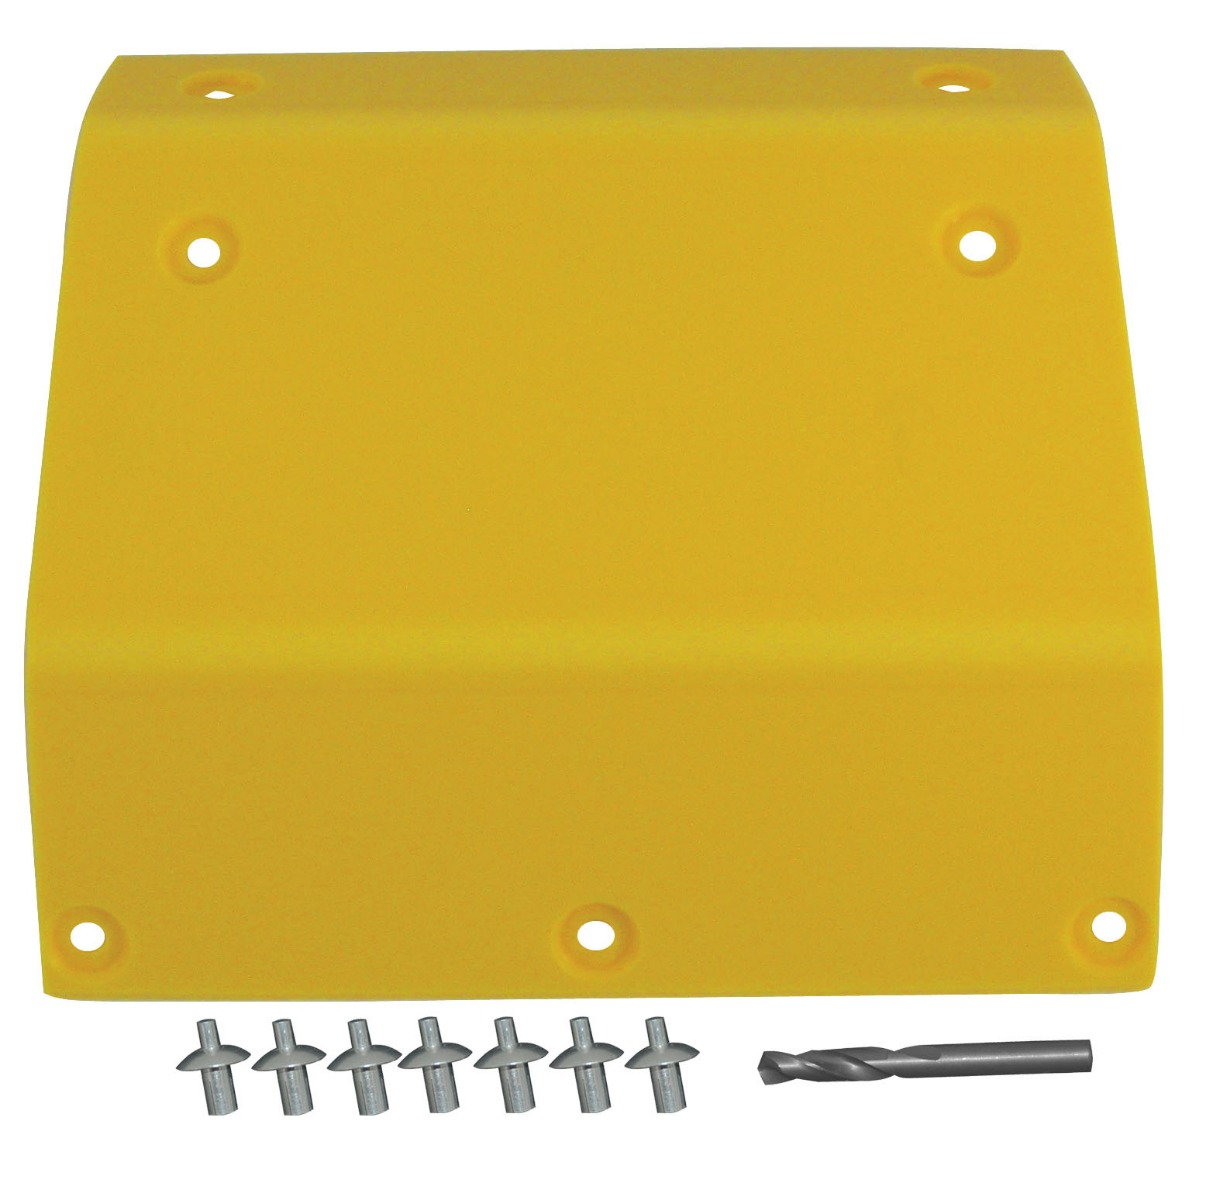 "John Deere 600 Series Raised Cut Panel 11 3/8"" x 11 7/8"" Yellow"